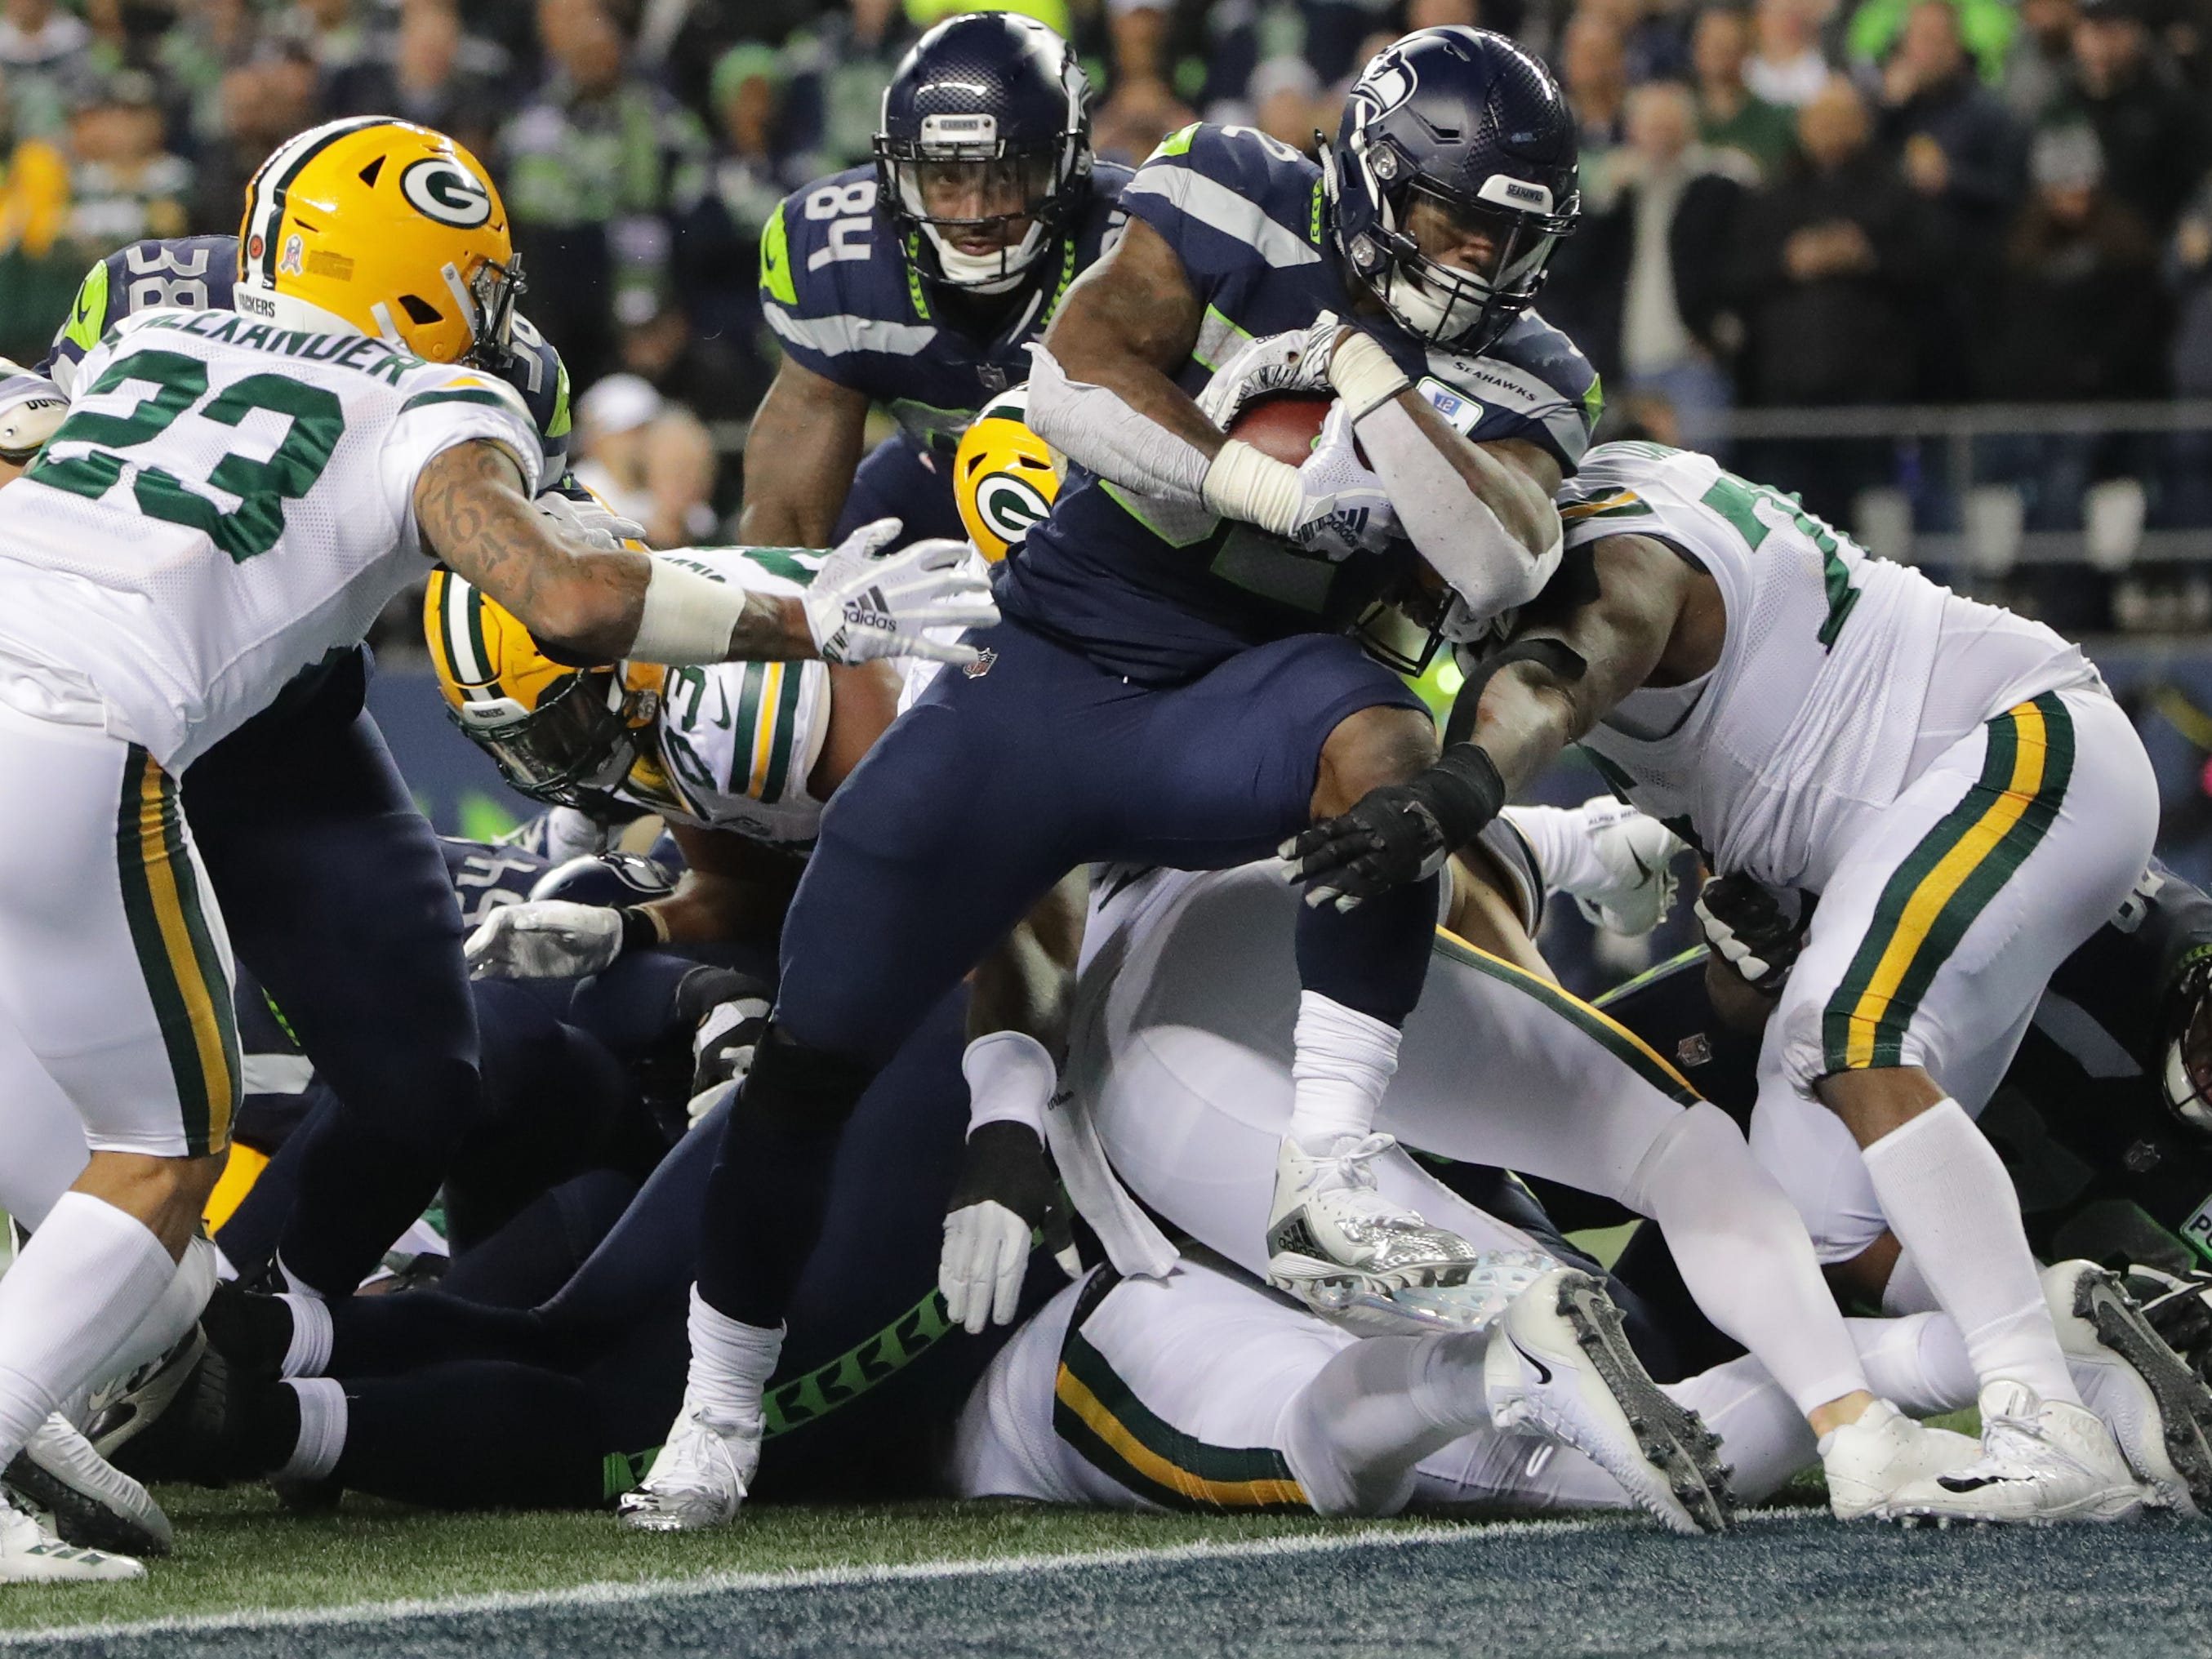 Seattle Seahawks running back Chris Carson (32) scores a touchdown on a one-yard run during the second quarter of their game against the Green Bay Packers Thursday, November 25, 2018 at CenturyLink Field in Seattle, Wash.  MARK HOFFMAN/MHOFFMAN@JOURNALSENTINEL.COM